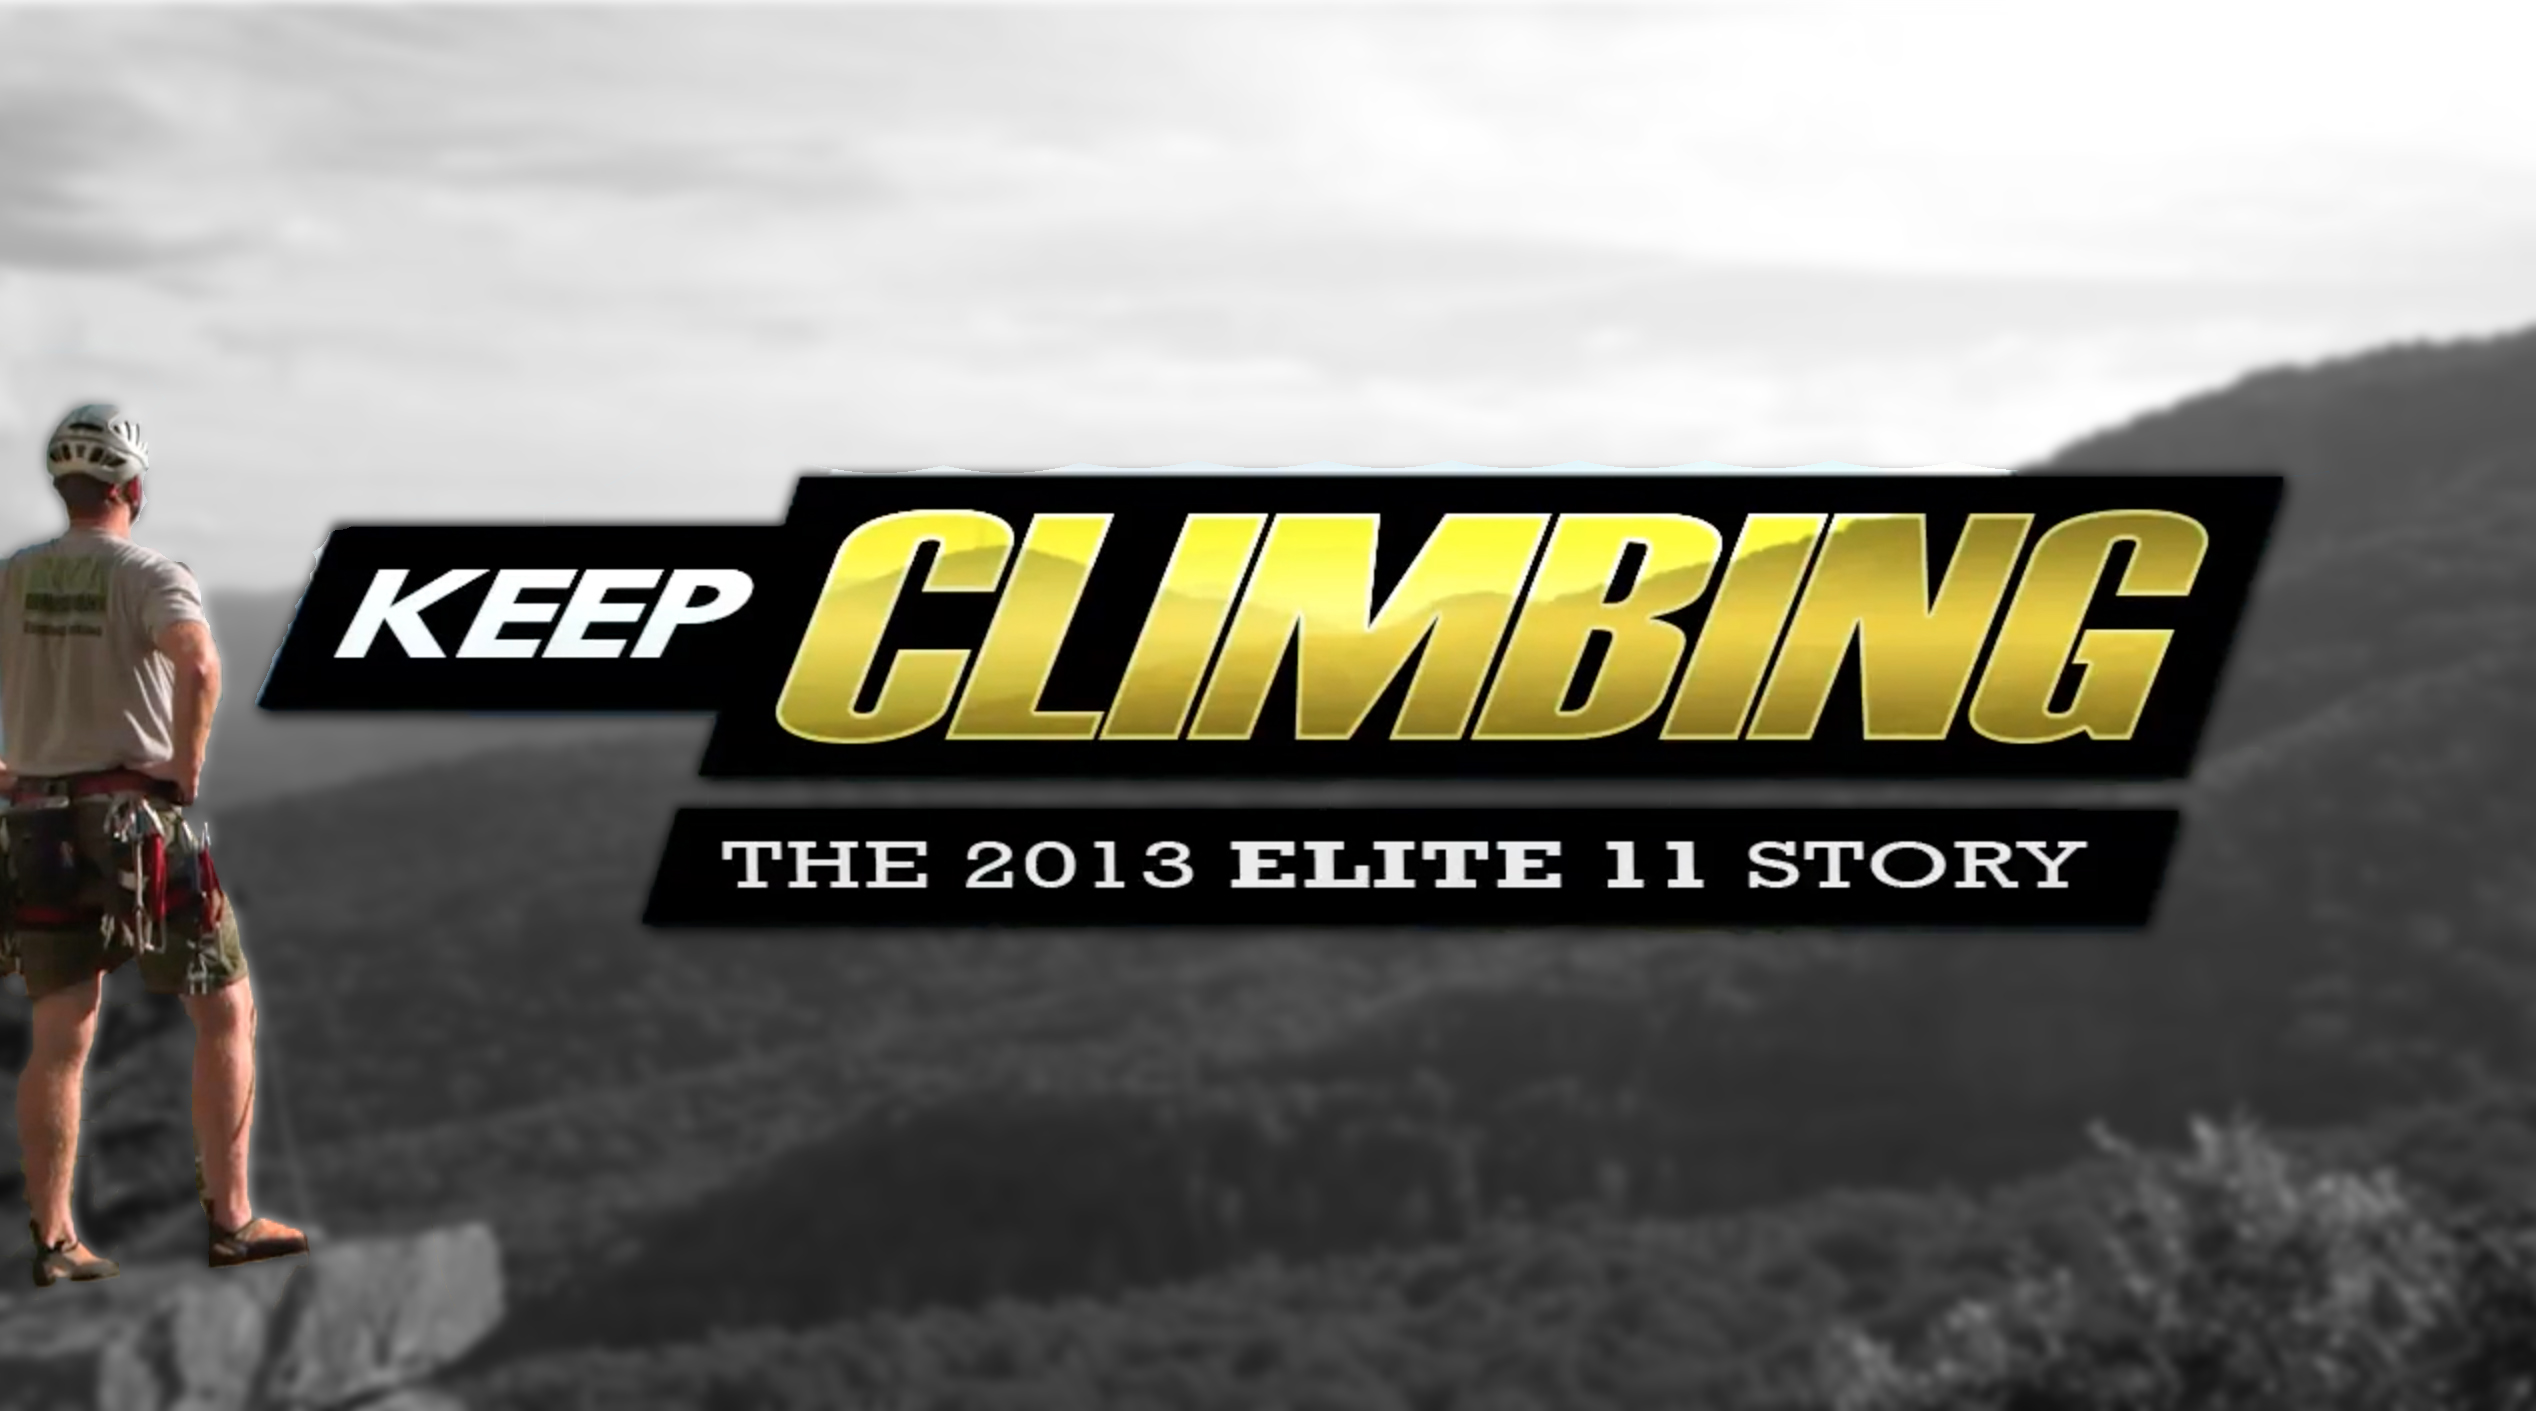 Keep Climbing: The 2013 Elite 11 Story